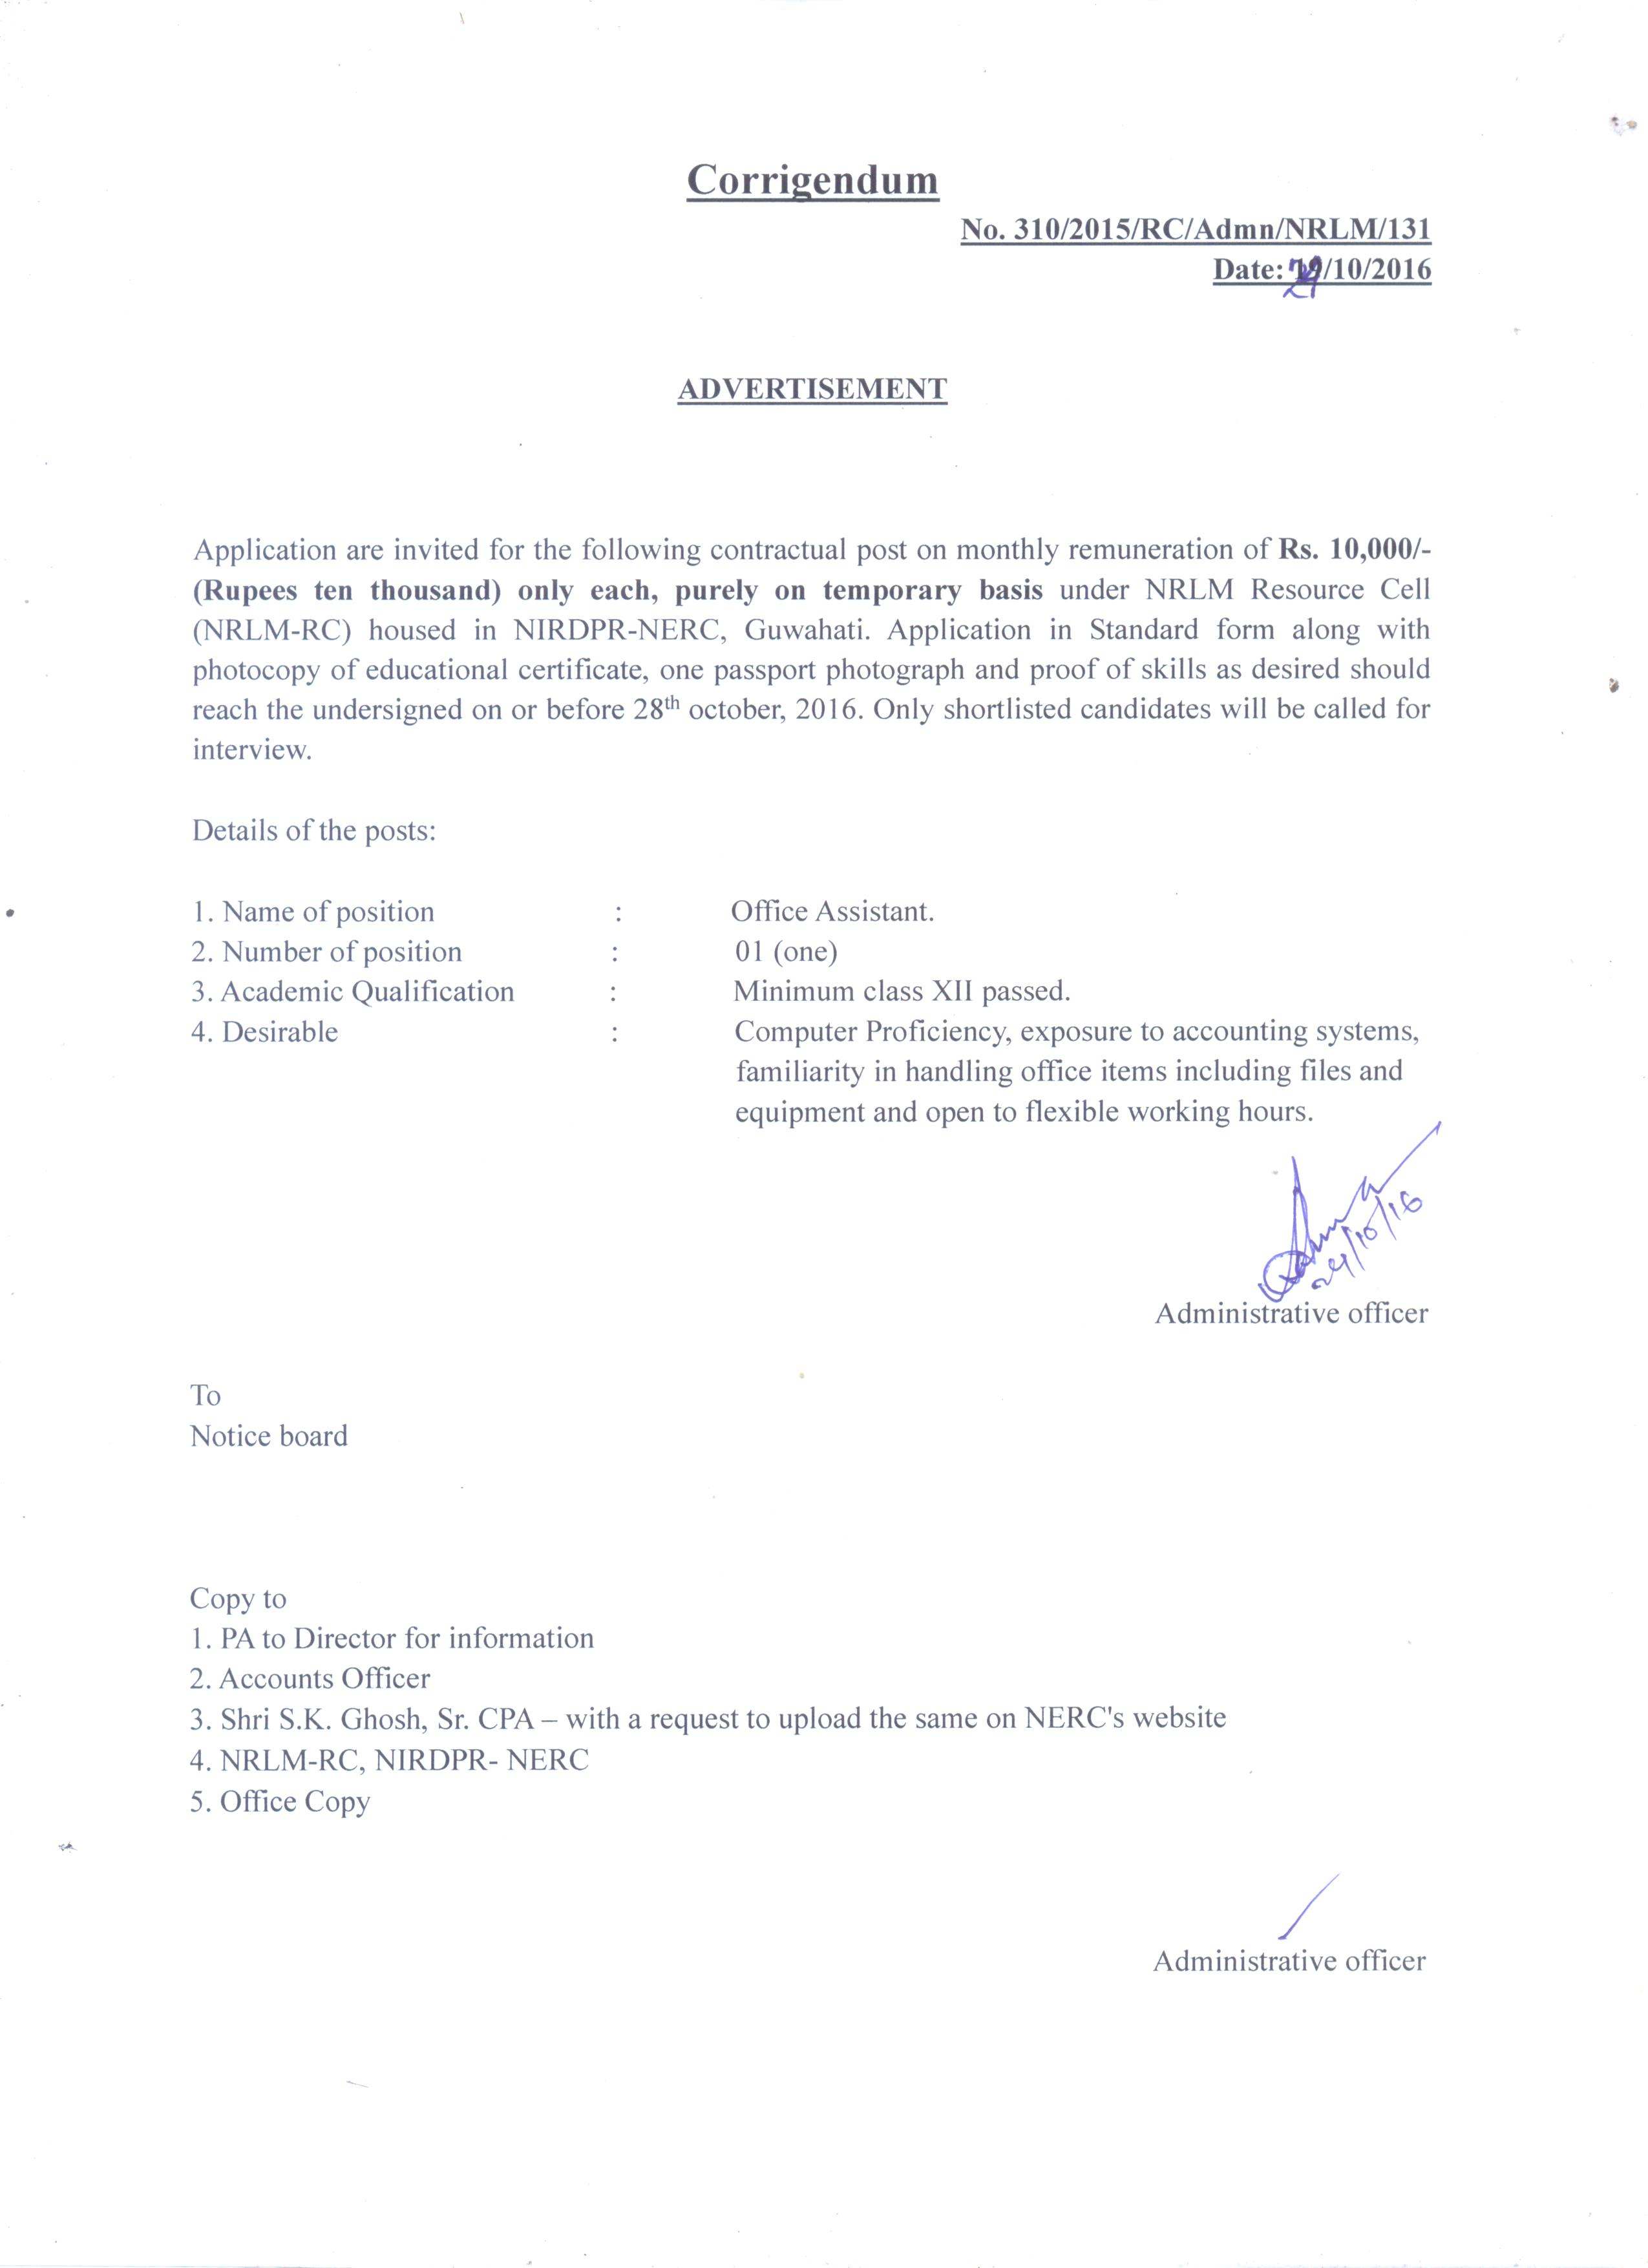 Nird nerc guwahati vacancy notice 5 corrigendum recruitment notice for the contactual post of office assistant october 24 2016 thecheapjerseys Gallery